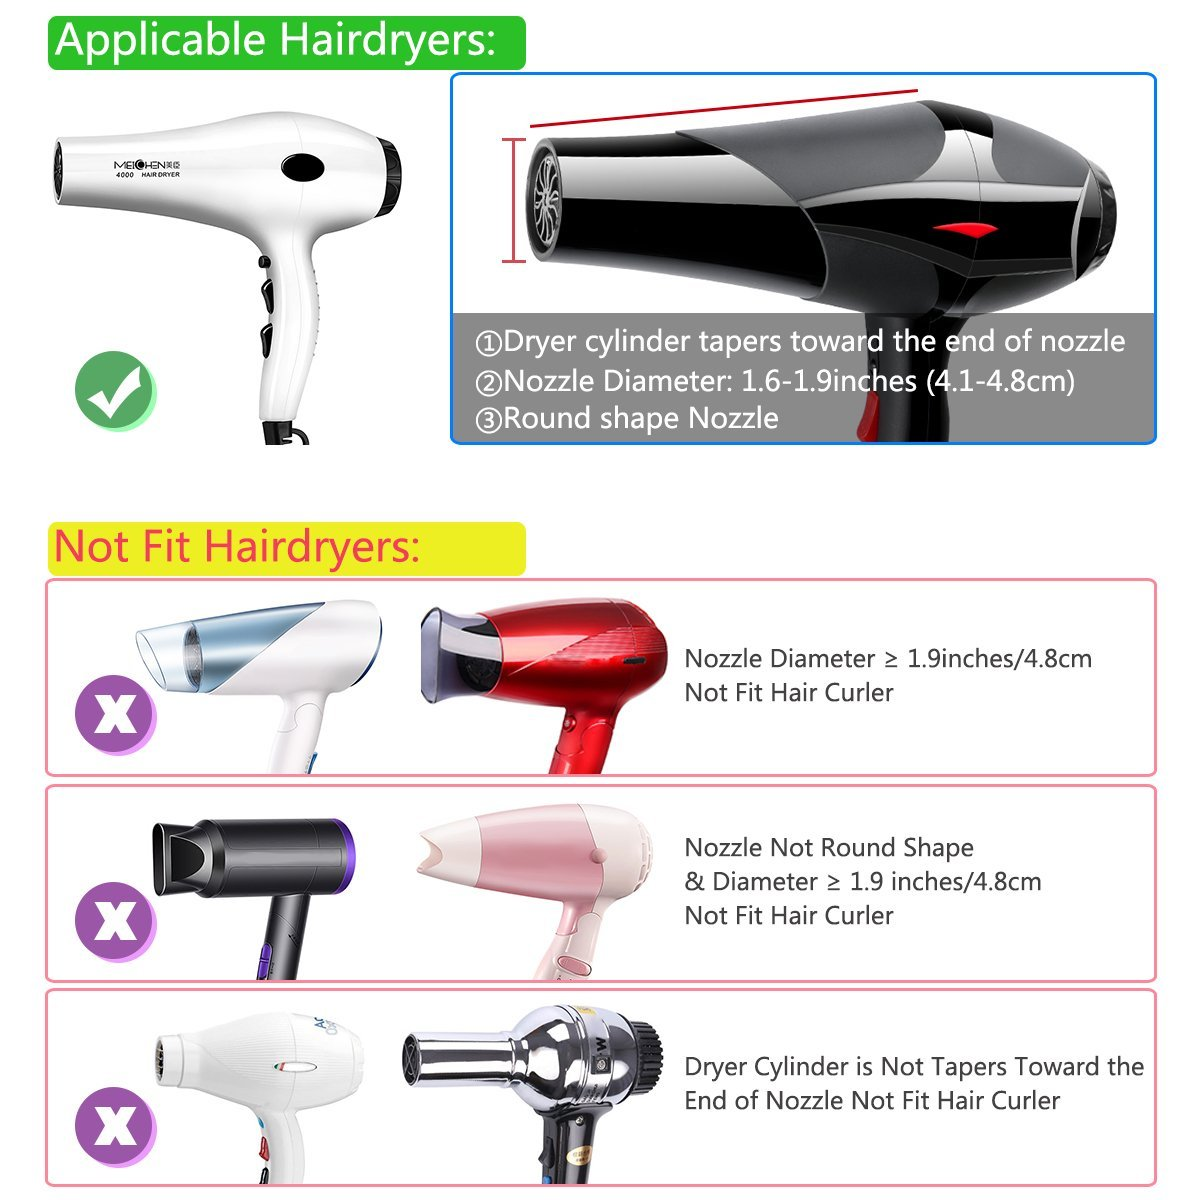 Diffuser Magic Wind Spin Curl  Salon Styling Tools Roller Curler Make Hair Curly Without Damage Hair Dryer